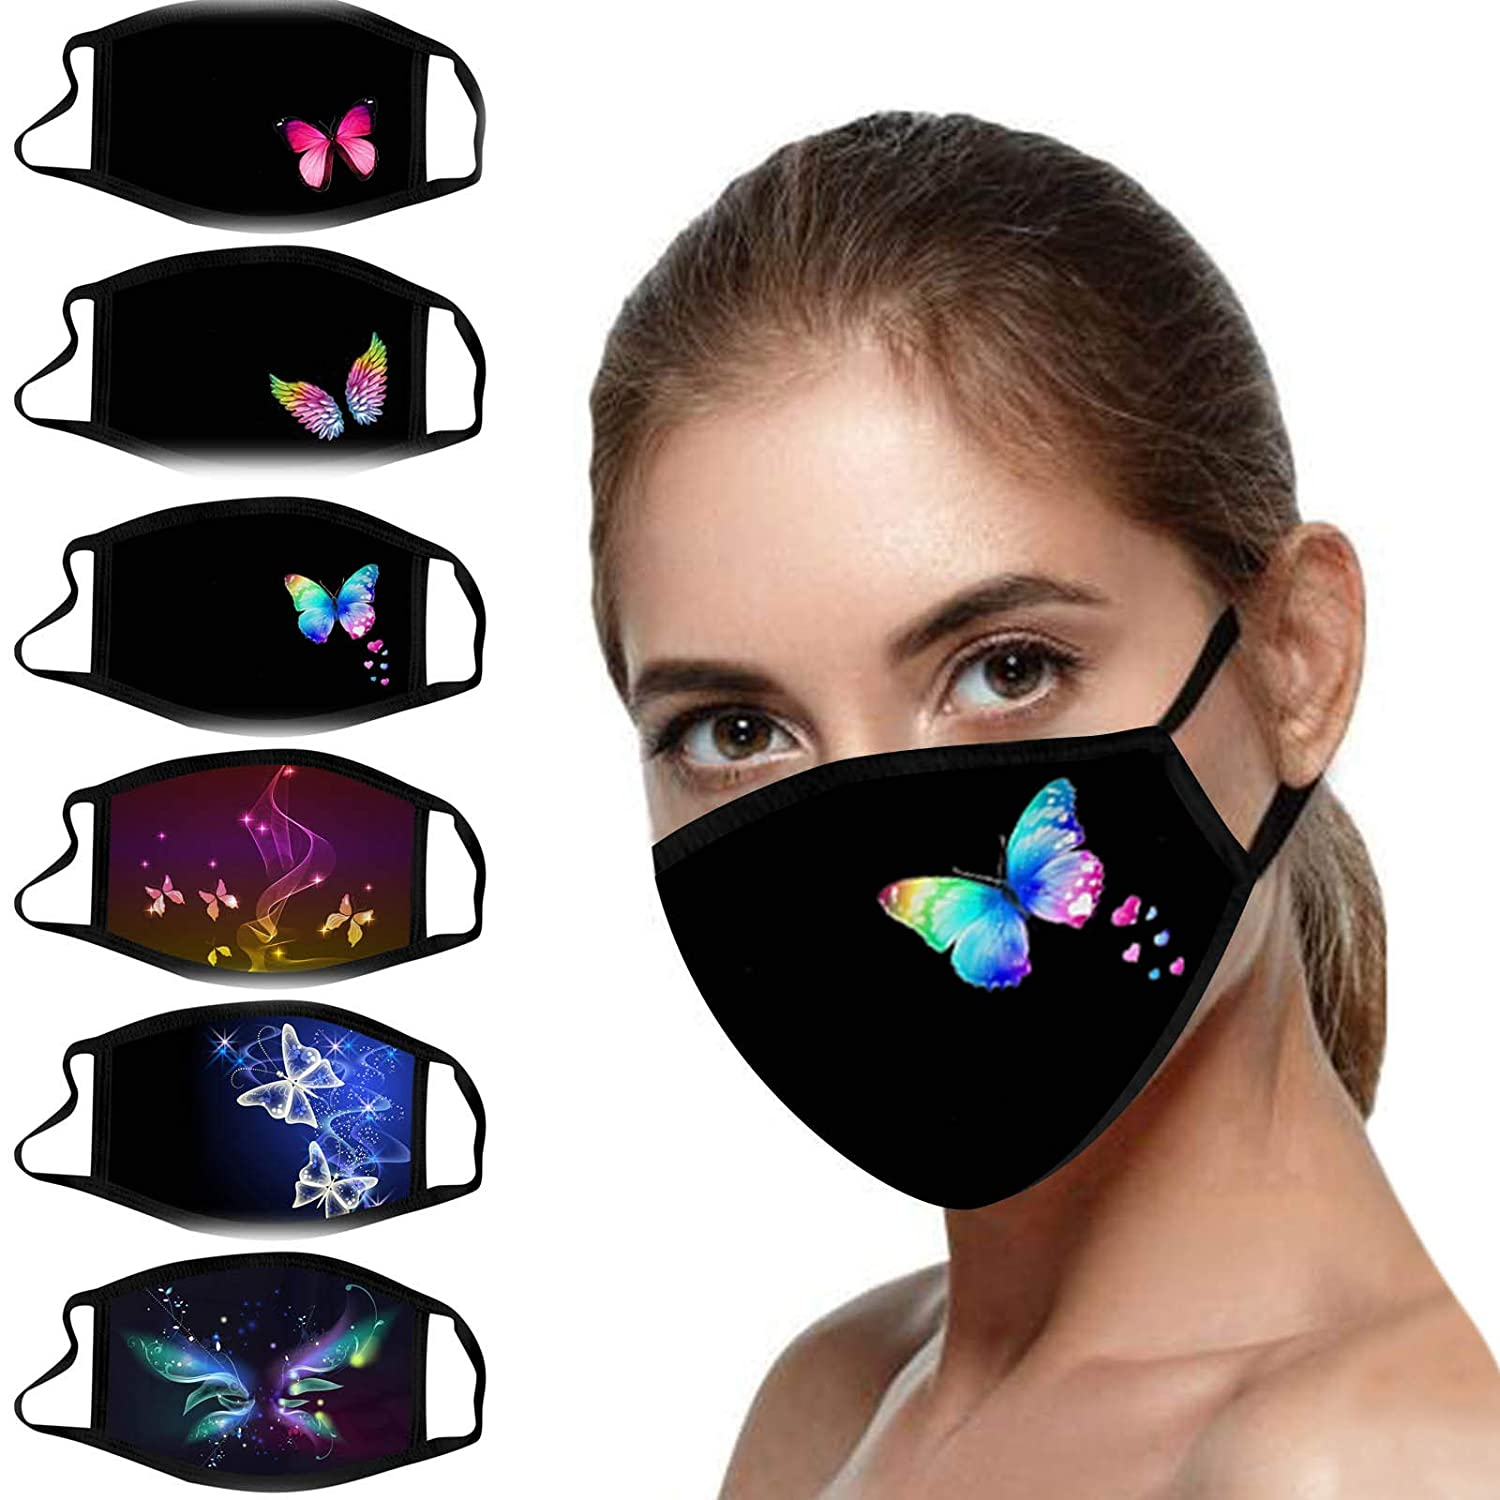 Lavany Womens Butterfly Cotton Face Bandanas_Mask_Cover, 6PC Halloween Party Christmas Ear loop Mouth Anti-Foggy Protection Activated Carbon Washable Covering for Women